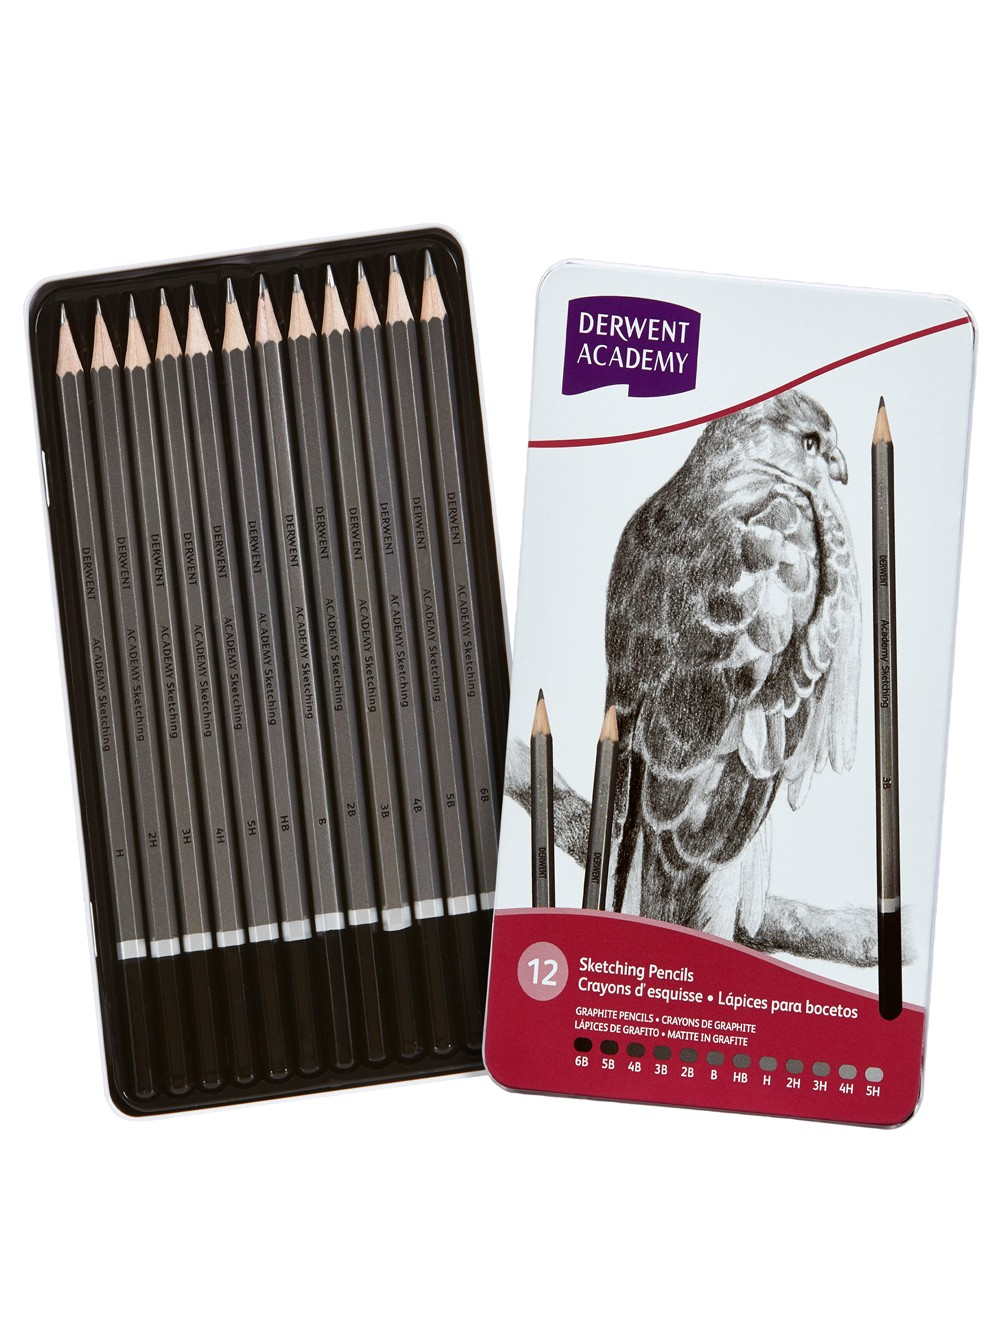 DERWENT ACADEMY SKETCHING PENCILS 12 TIN (5H-6B)